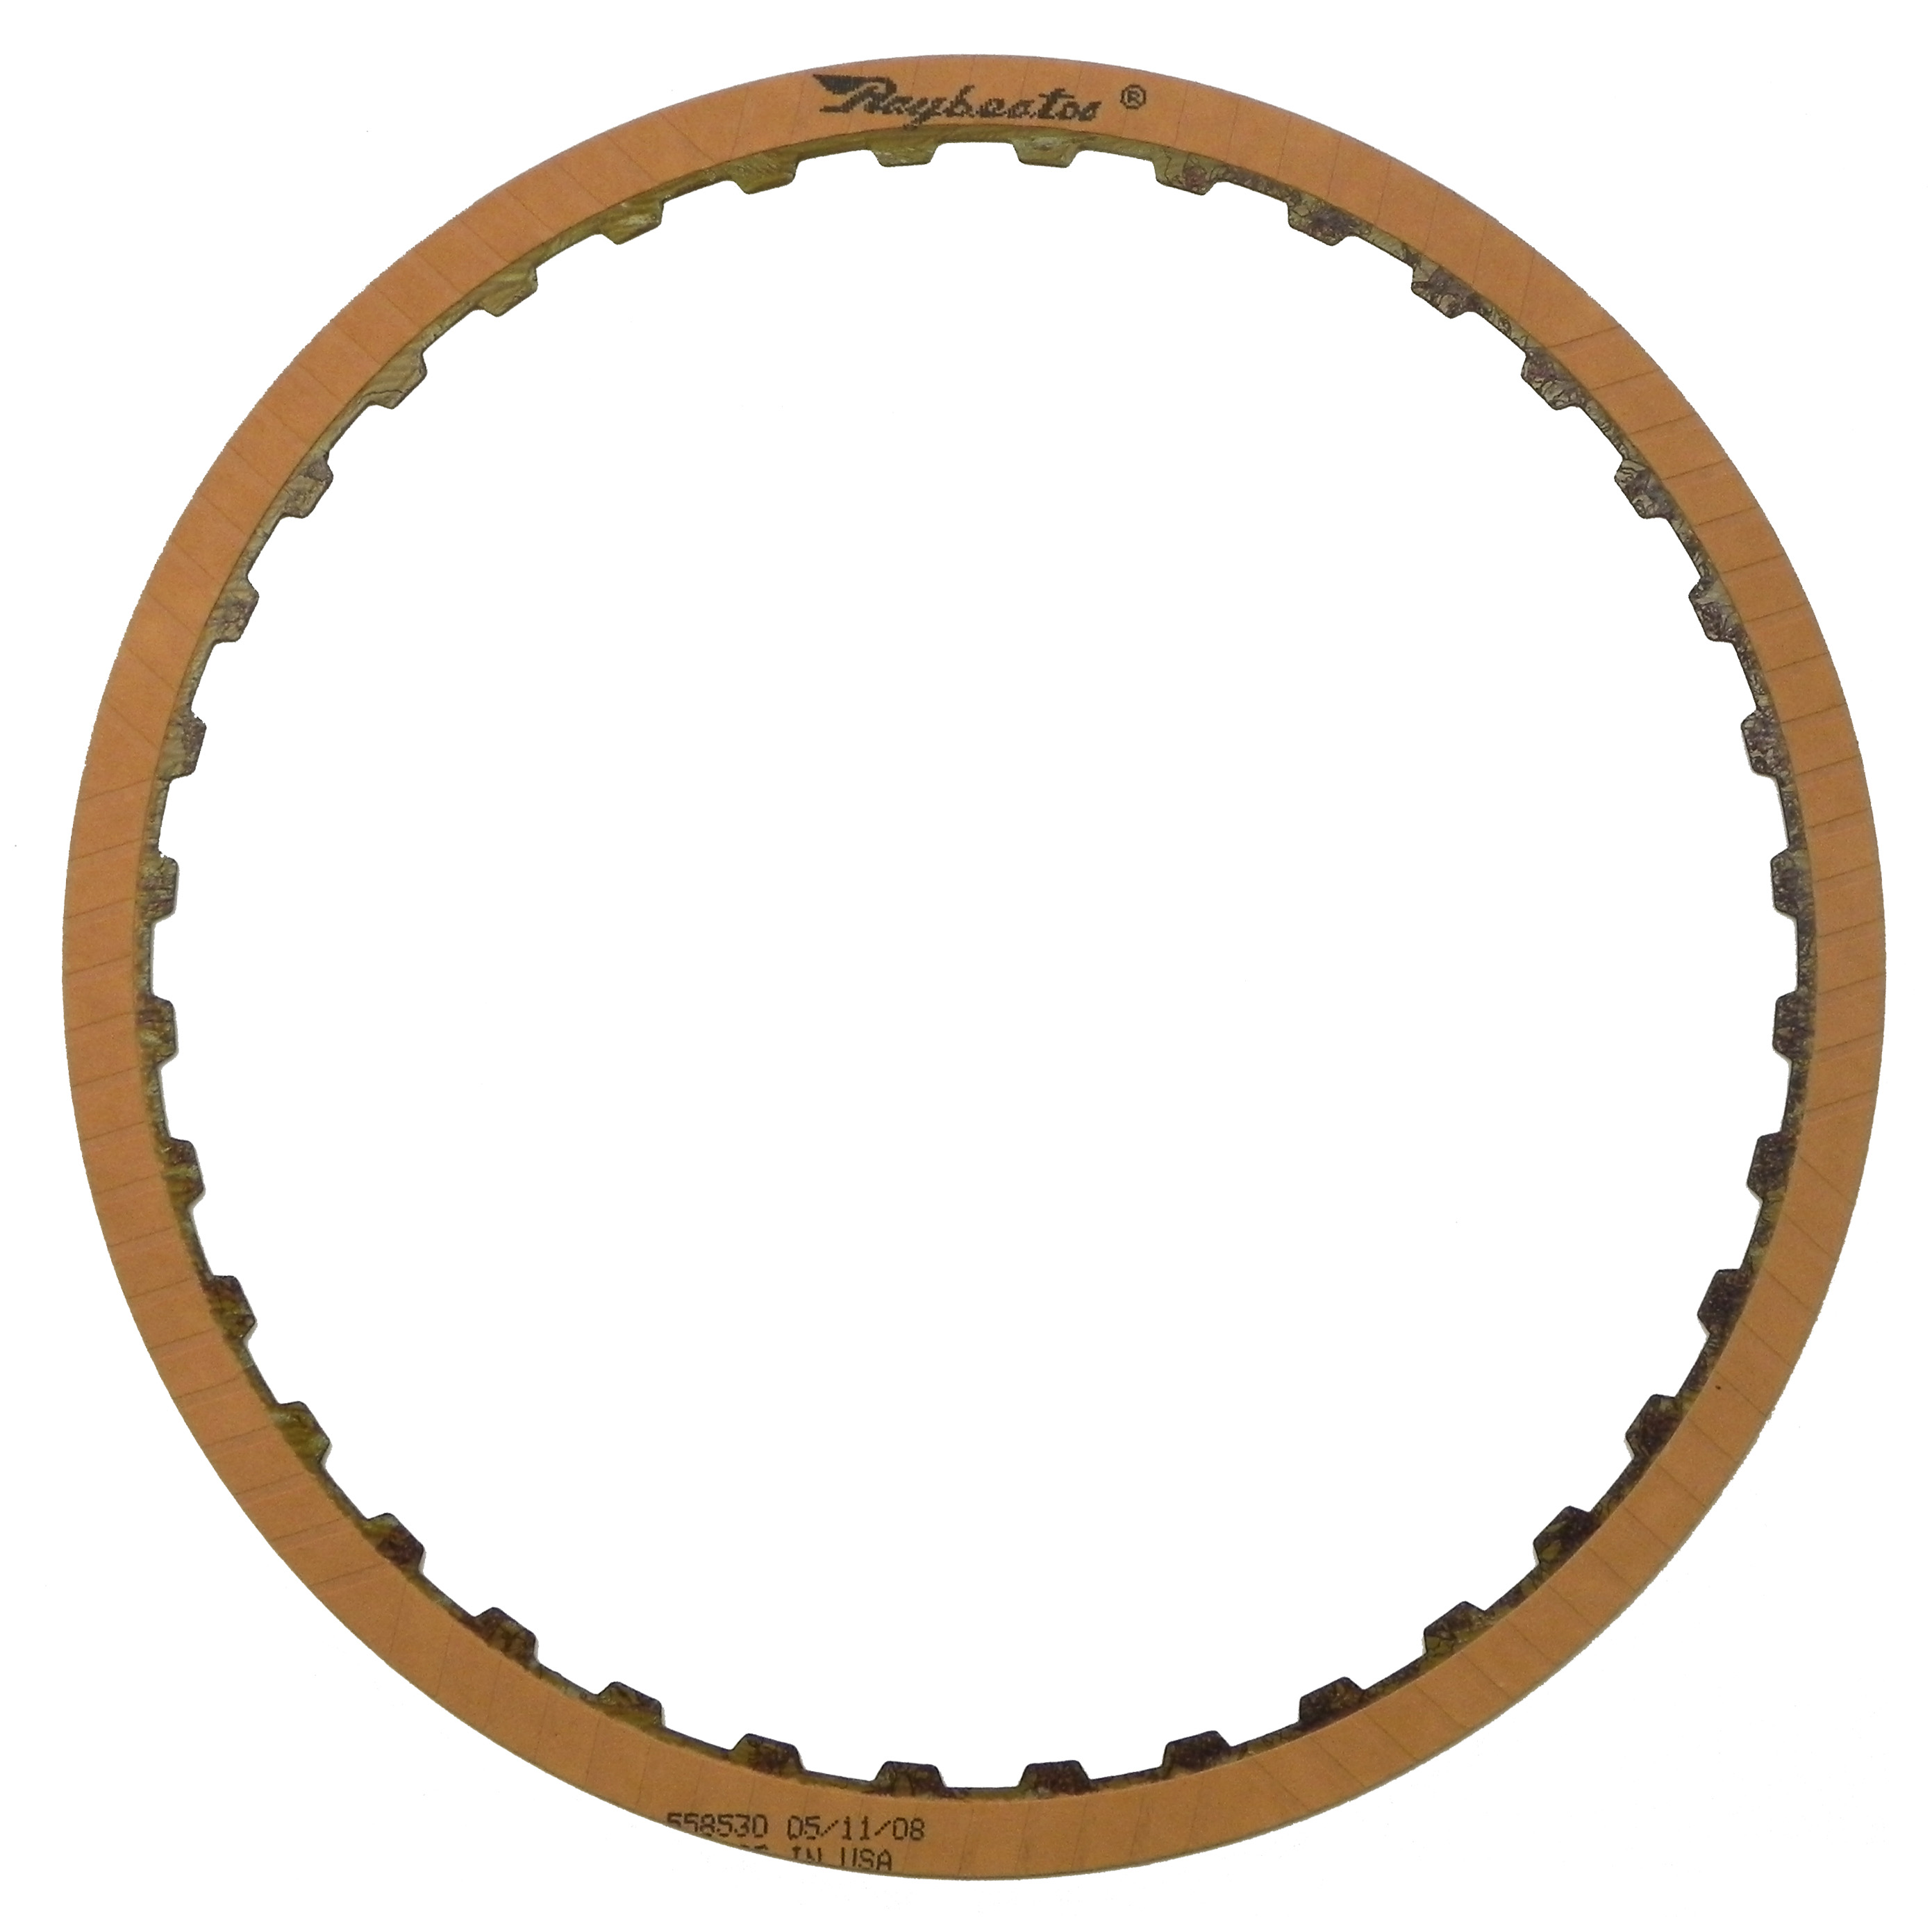 R558530 | 2007-ON Friction Clutch Plate OE Replacement 1st, 2nd, 3rd, 4th